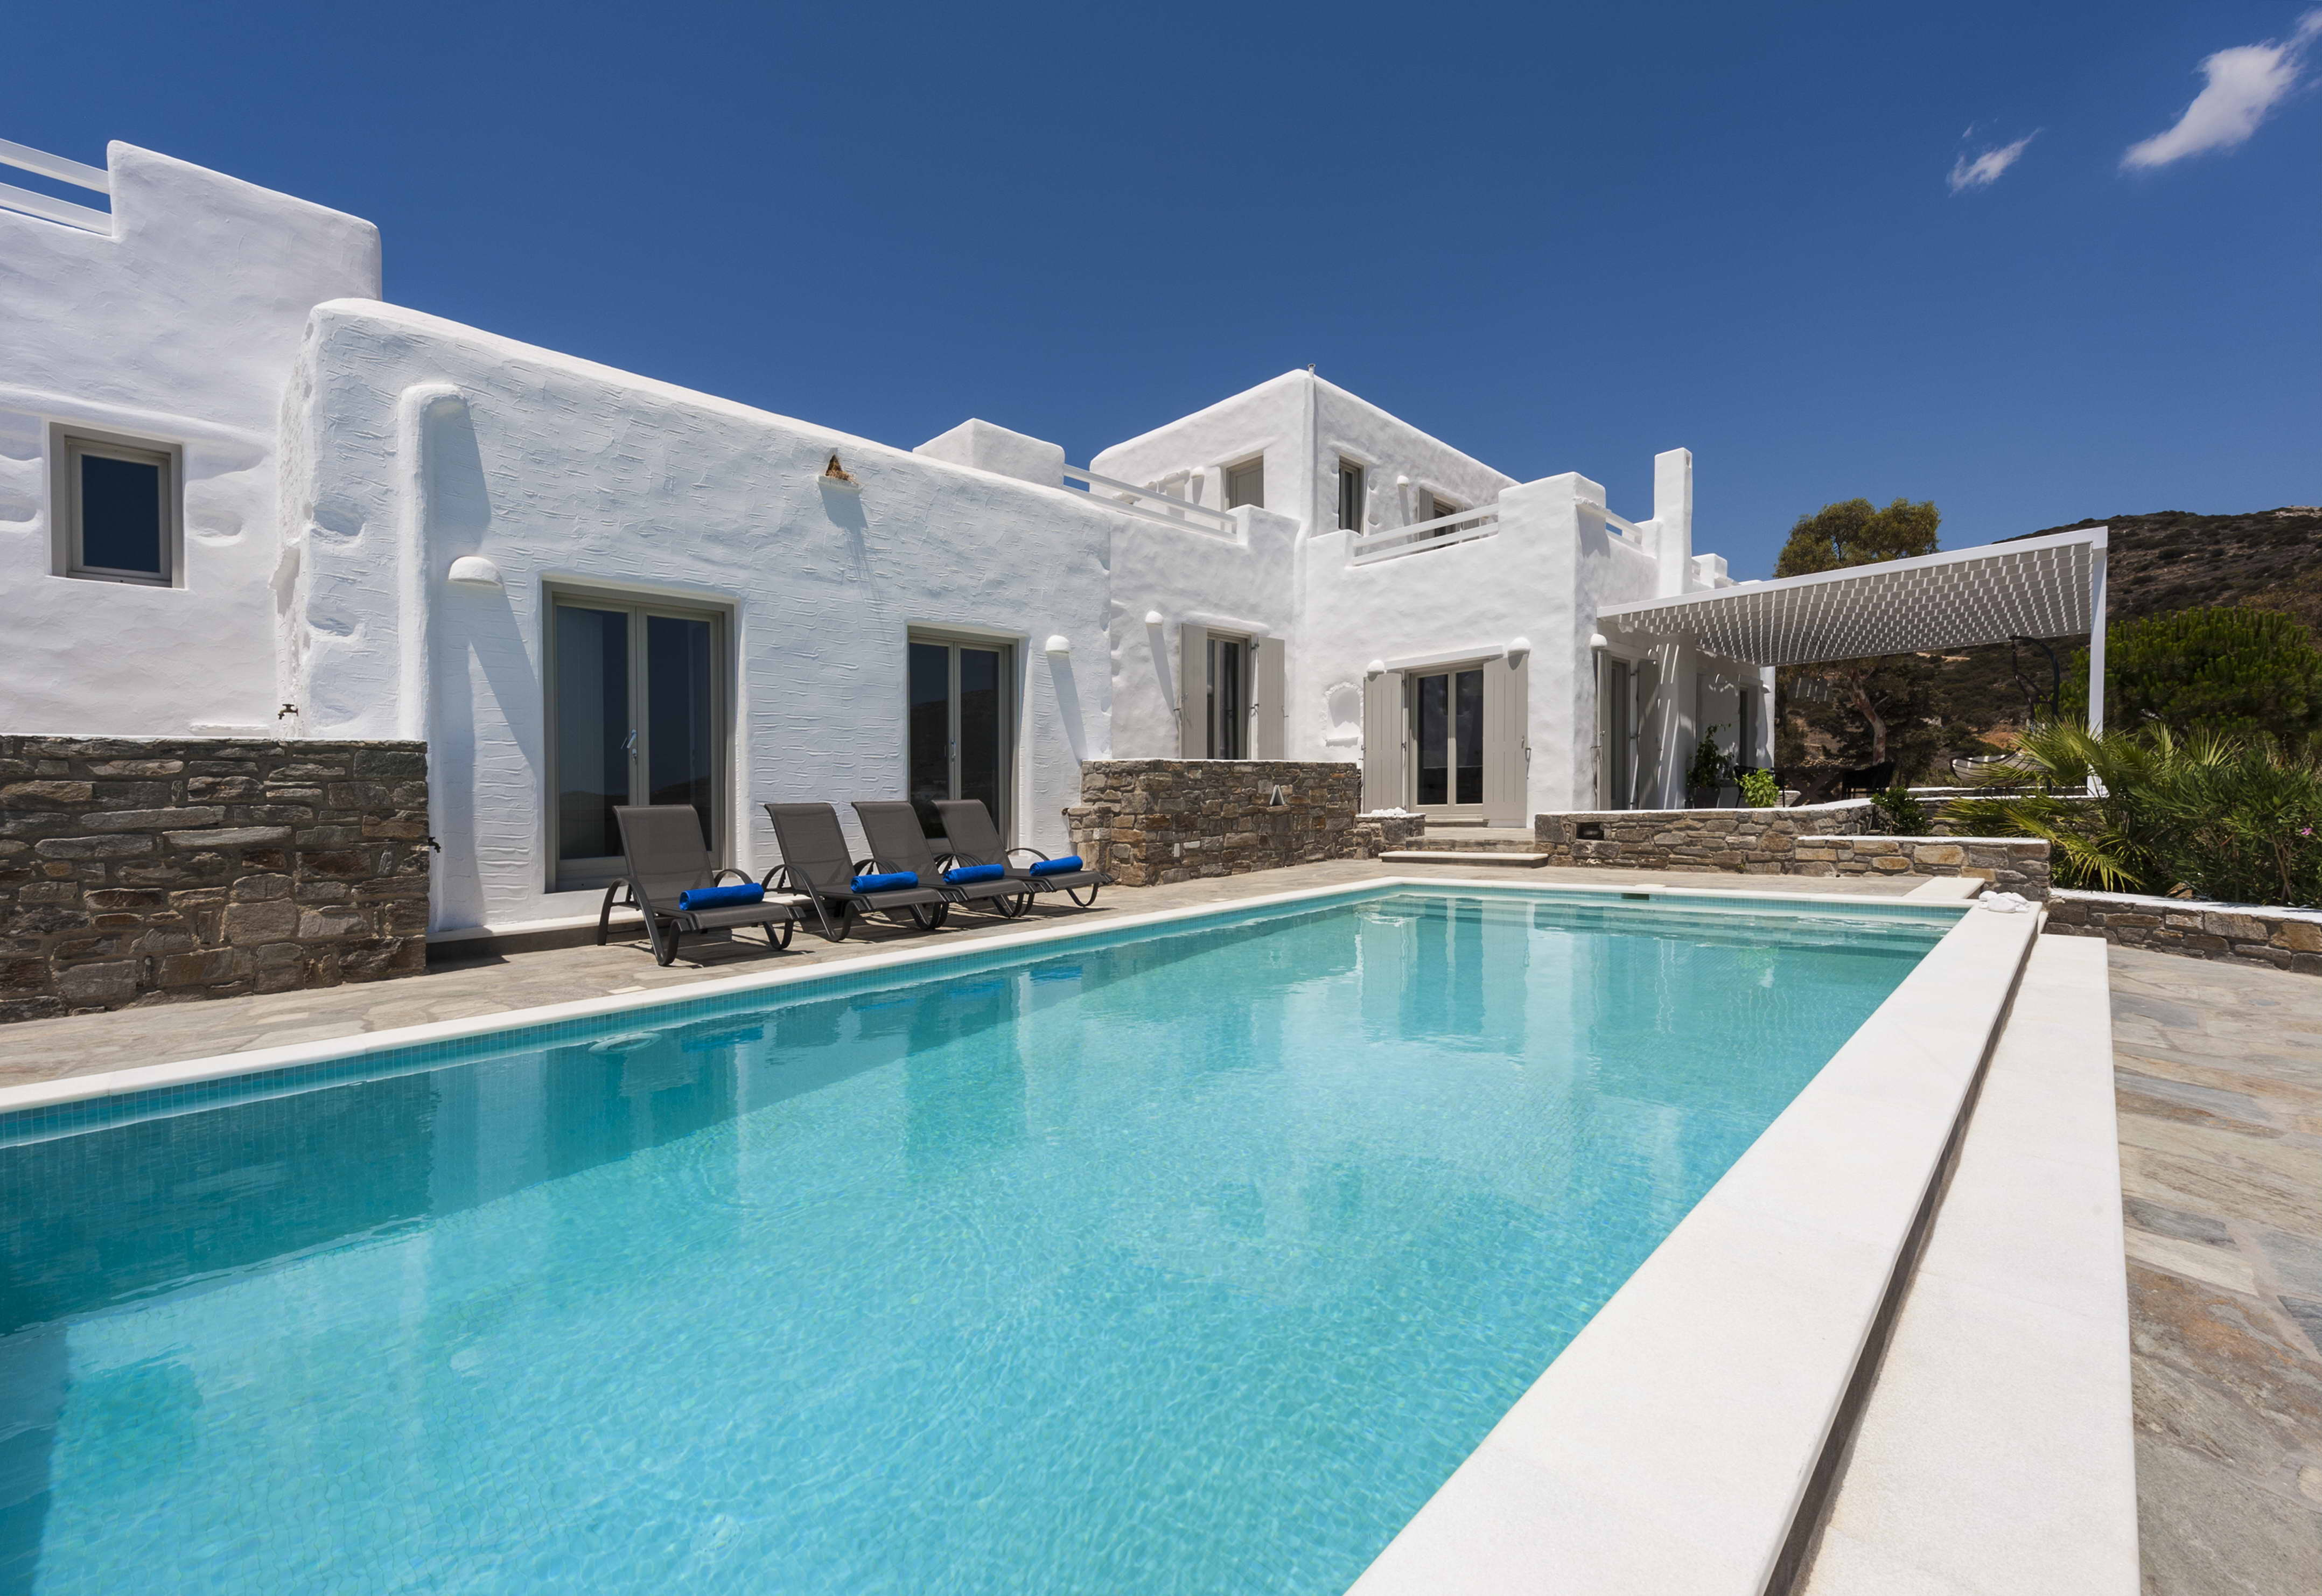 Property Image 2 - Relaxing Posh Villa with Extravagant Aegean Sea View